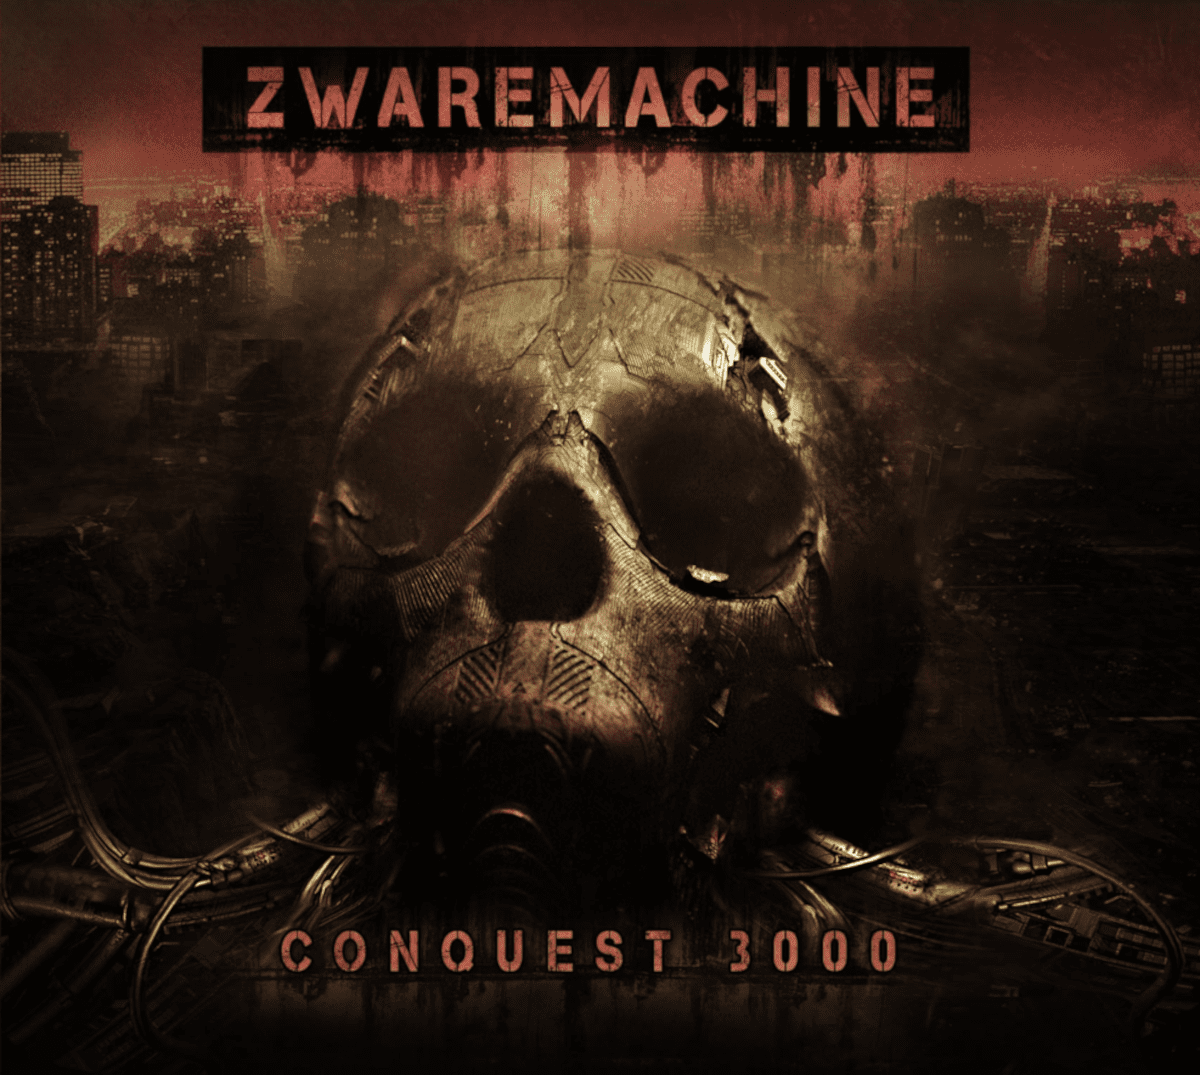 Second album by Zwaremachine is on its way: 'Conquest 3000' - check out the album teaser